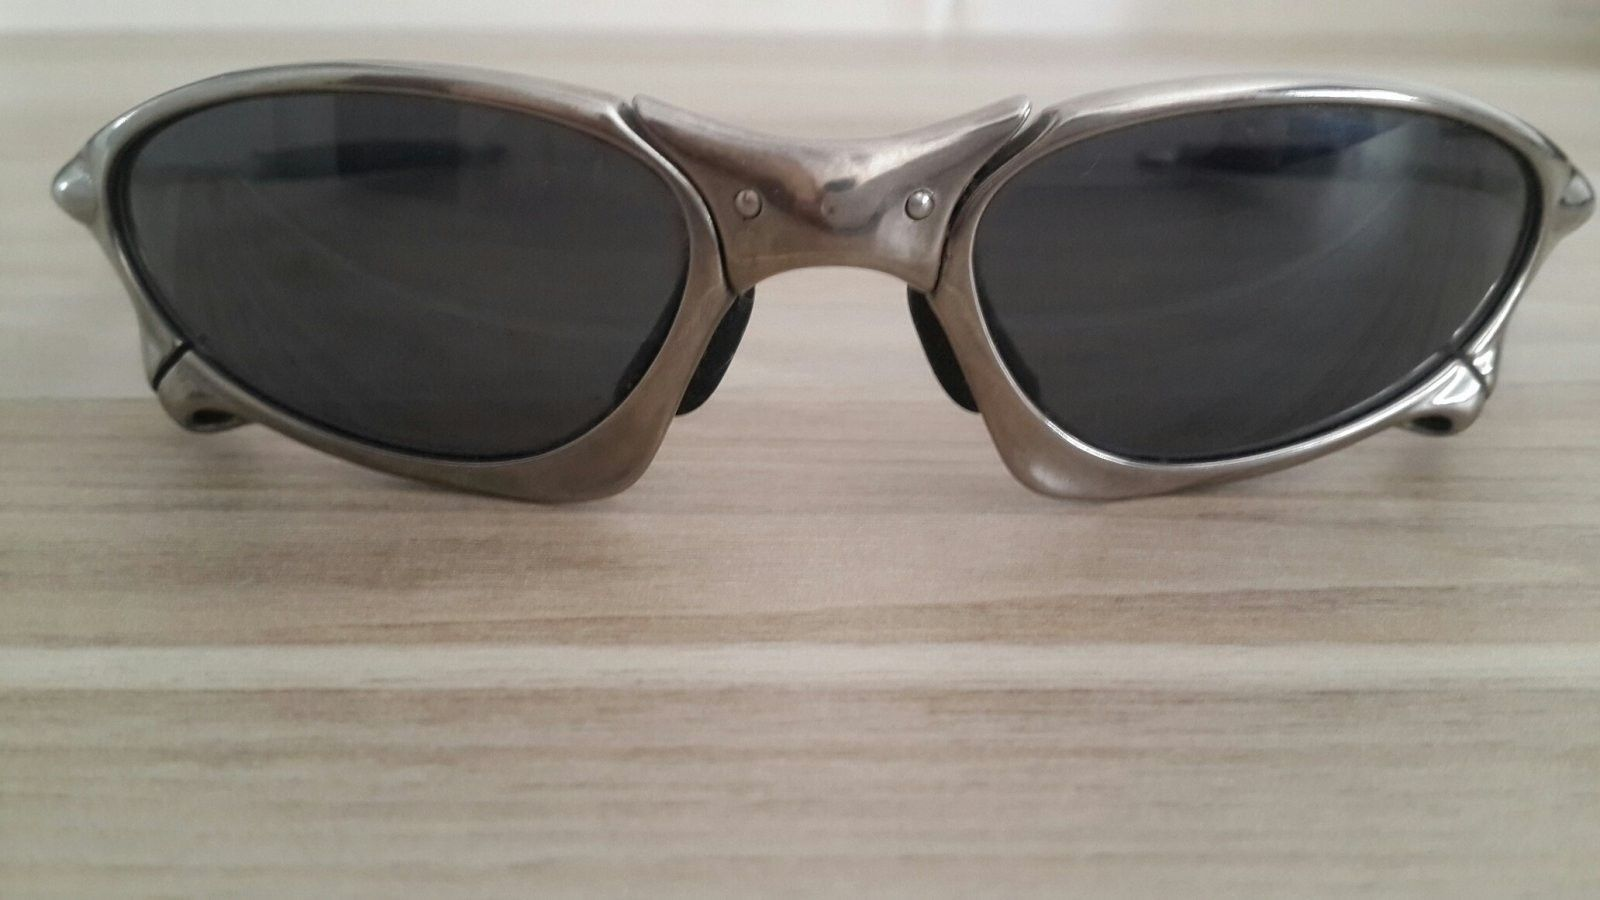 Oakley Penny Polished No Serial Number - 20141015_121819_resized.jpg